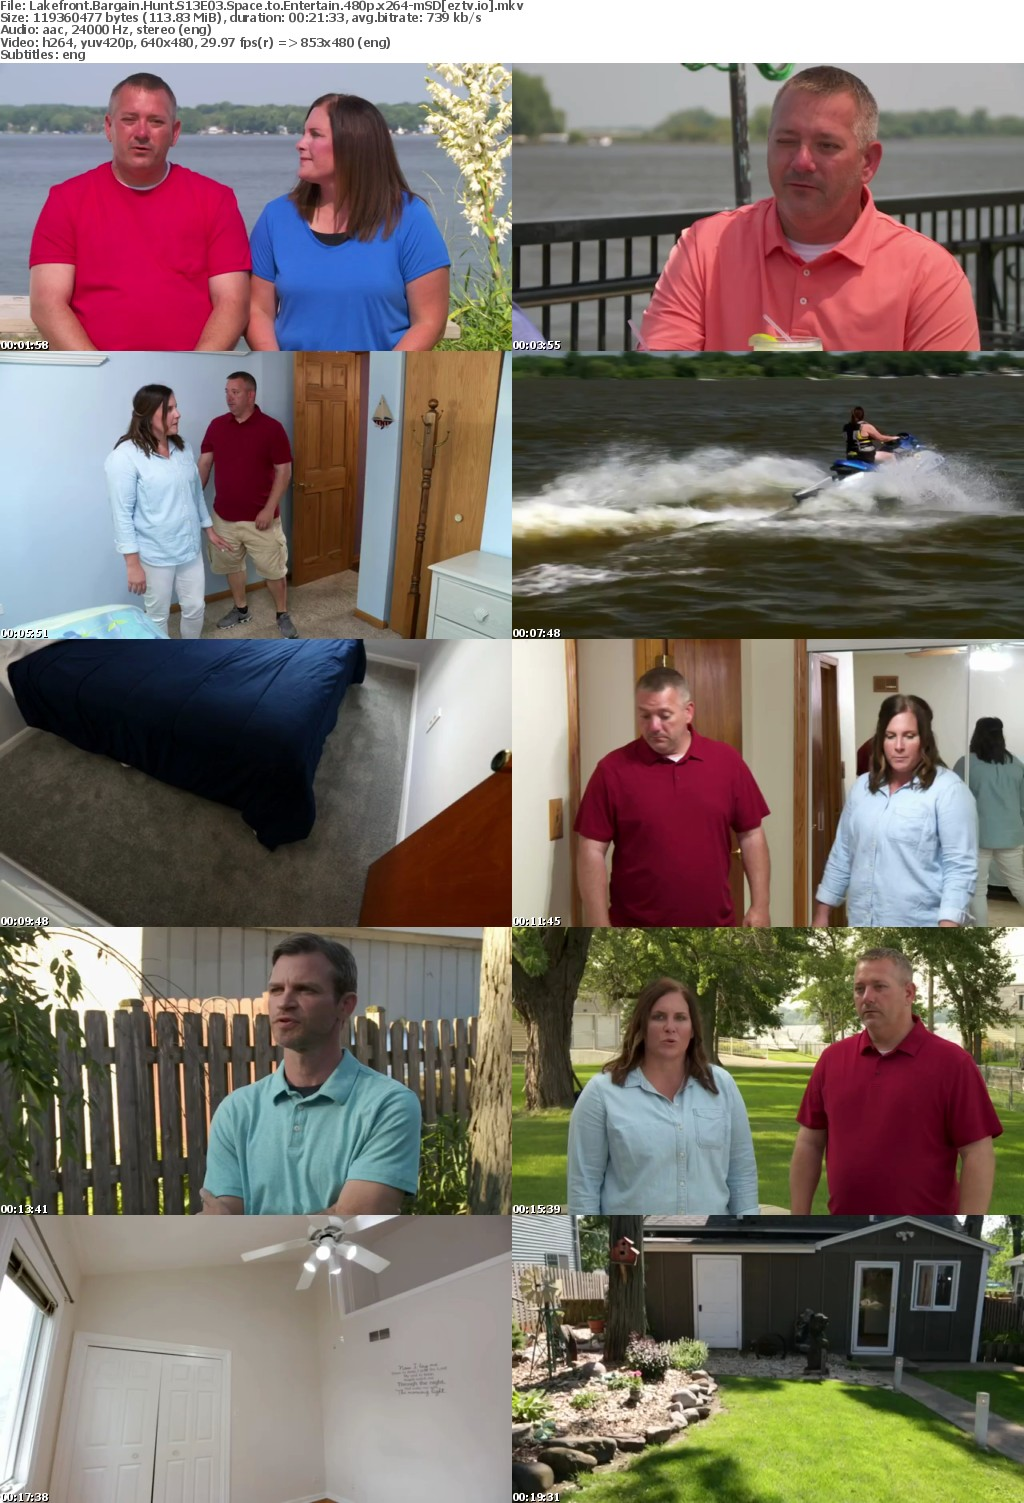 Lakefront Bargain Hunt S13E03 Space to Entertain 480p x264-mSD